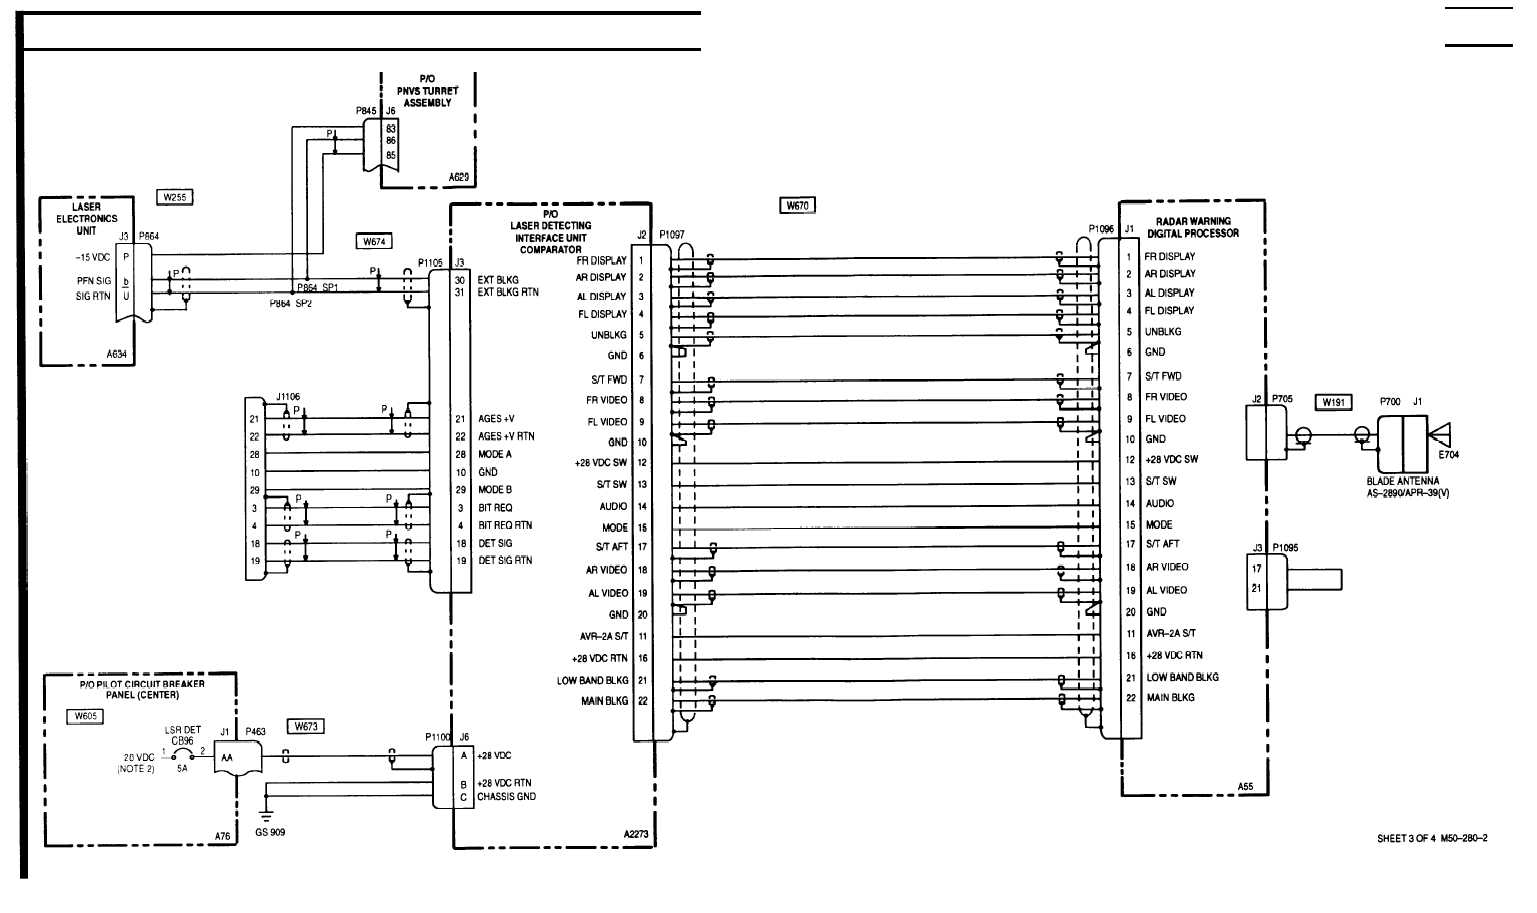 sx460 avr wiring diagram solidworks wiring diagram wiring